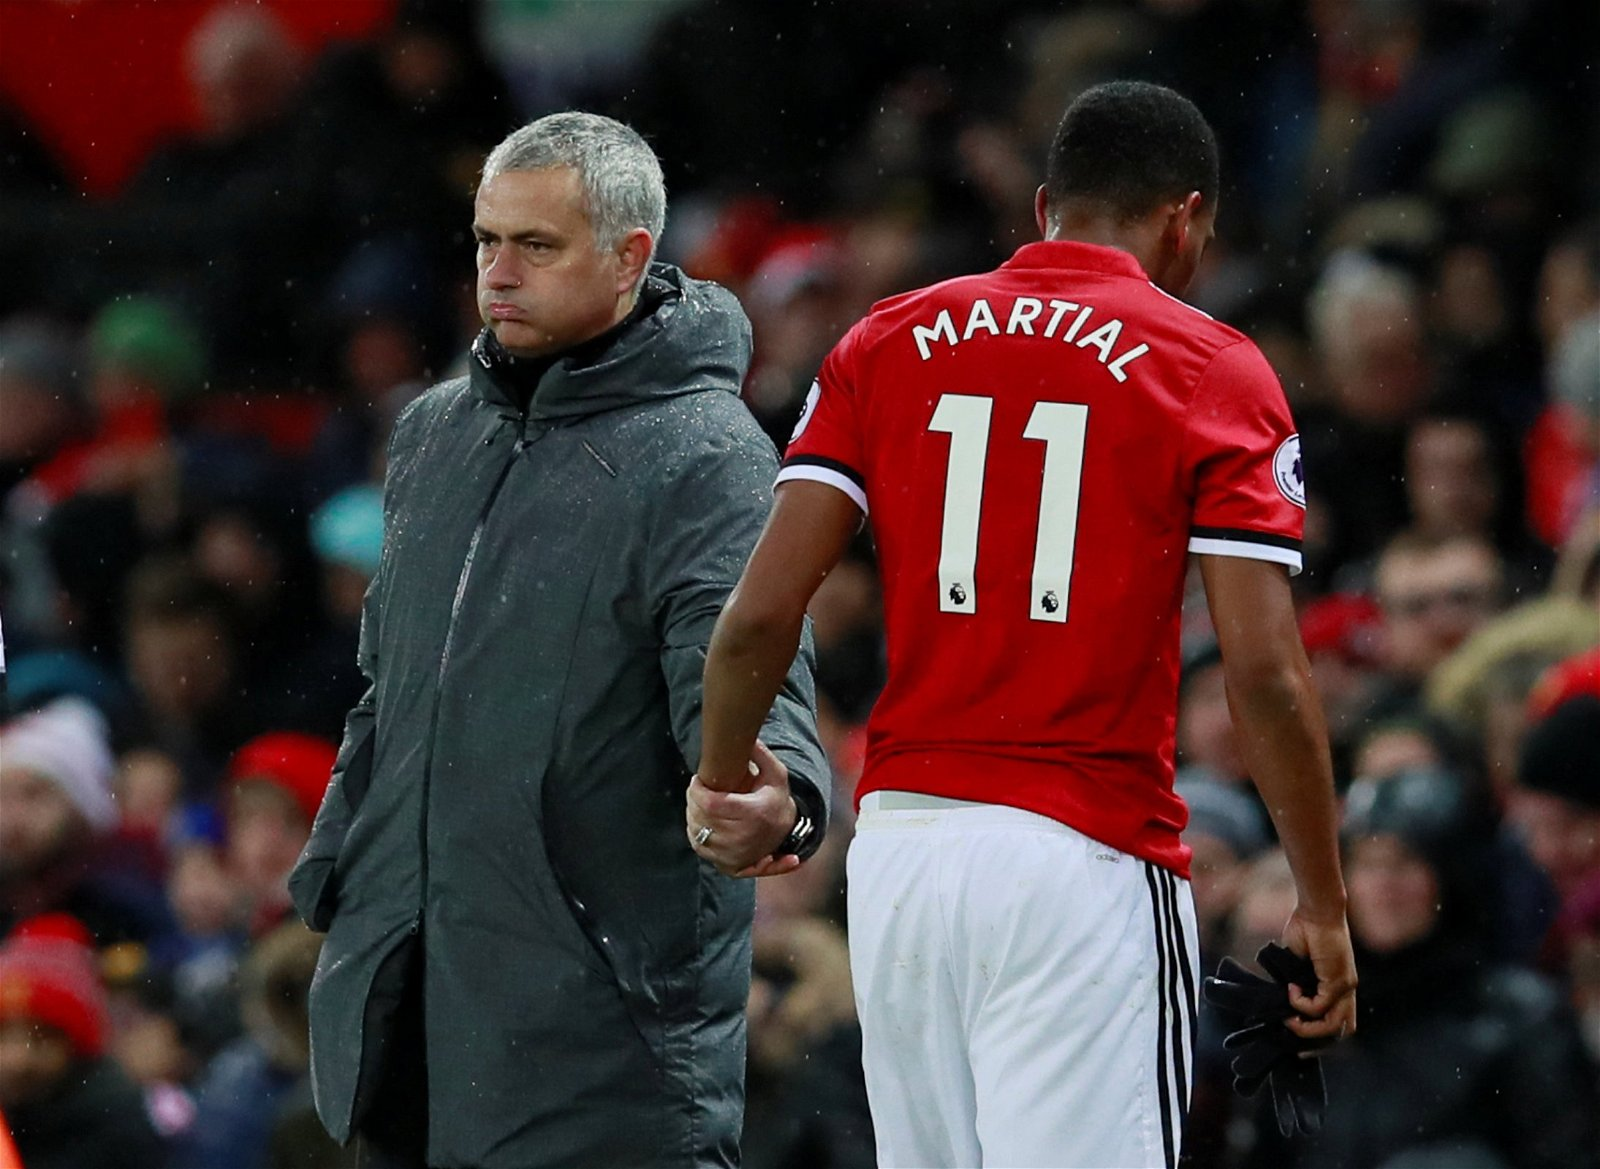 Manchester United manager Jose Mourinho shakes hands with Anthony Martial after he's substituted against Brighton